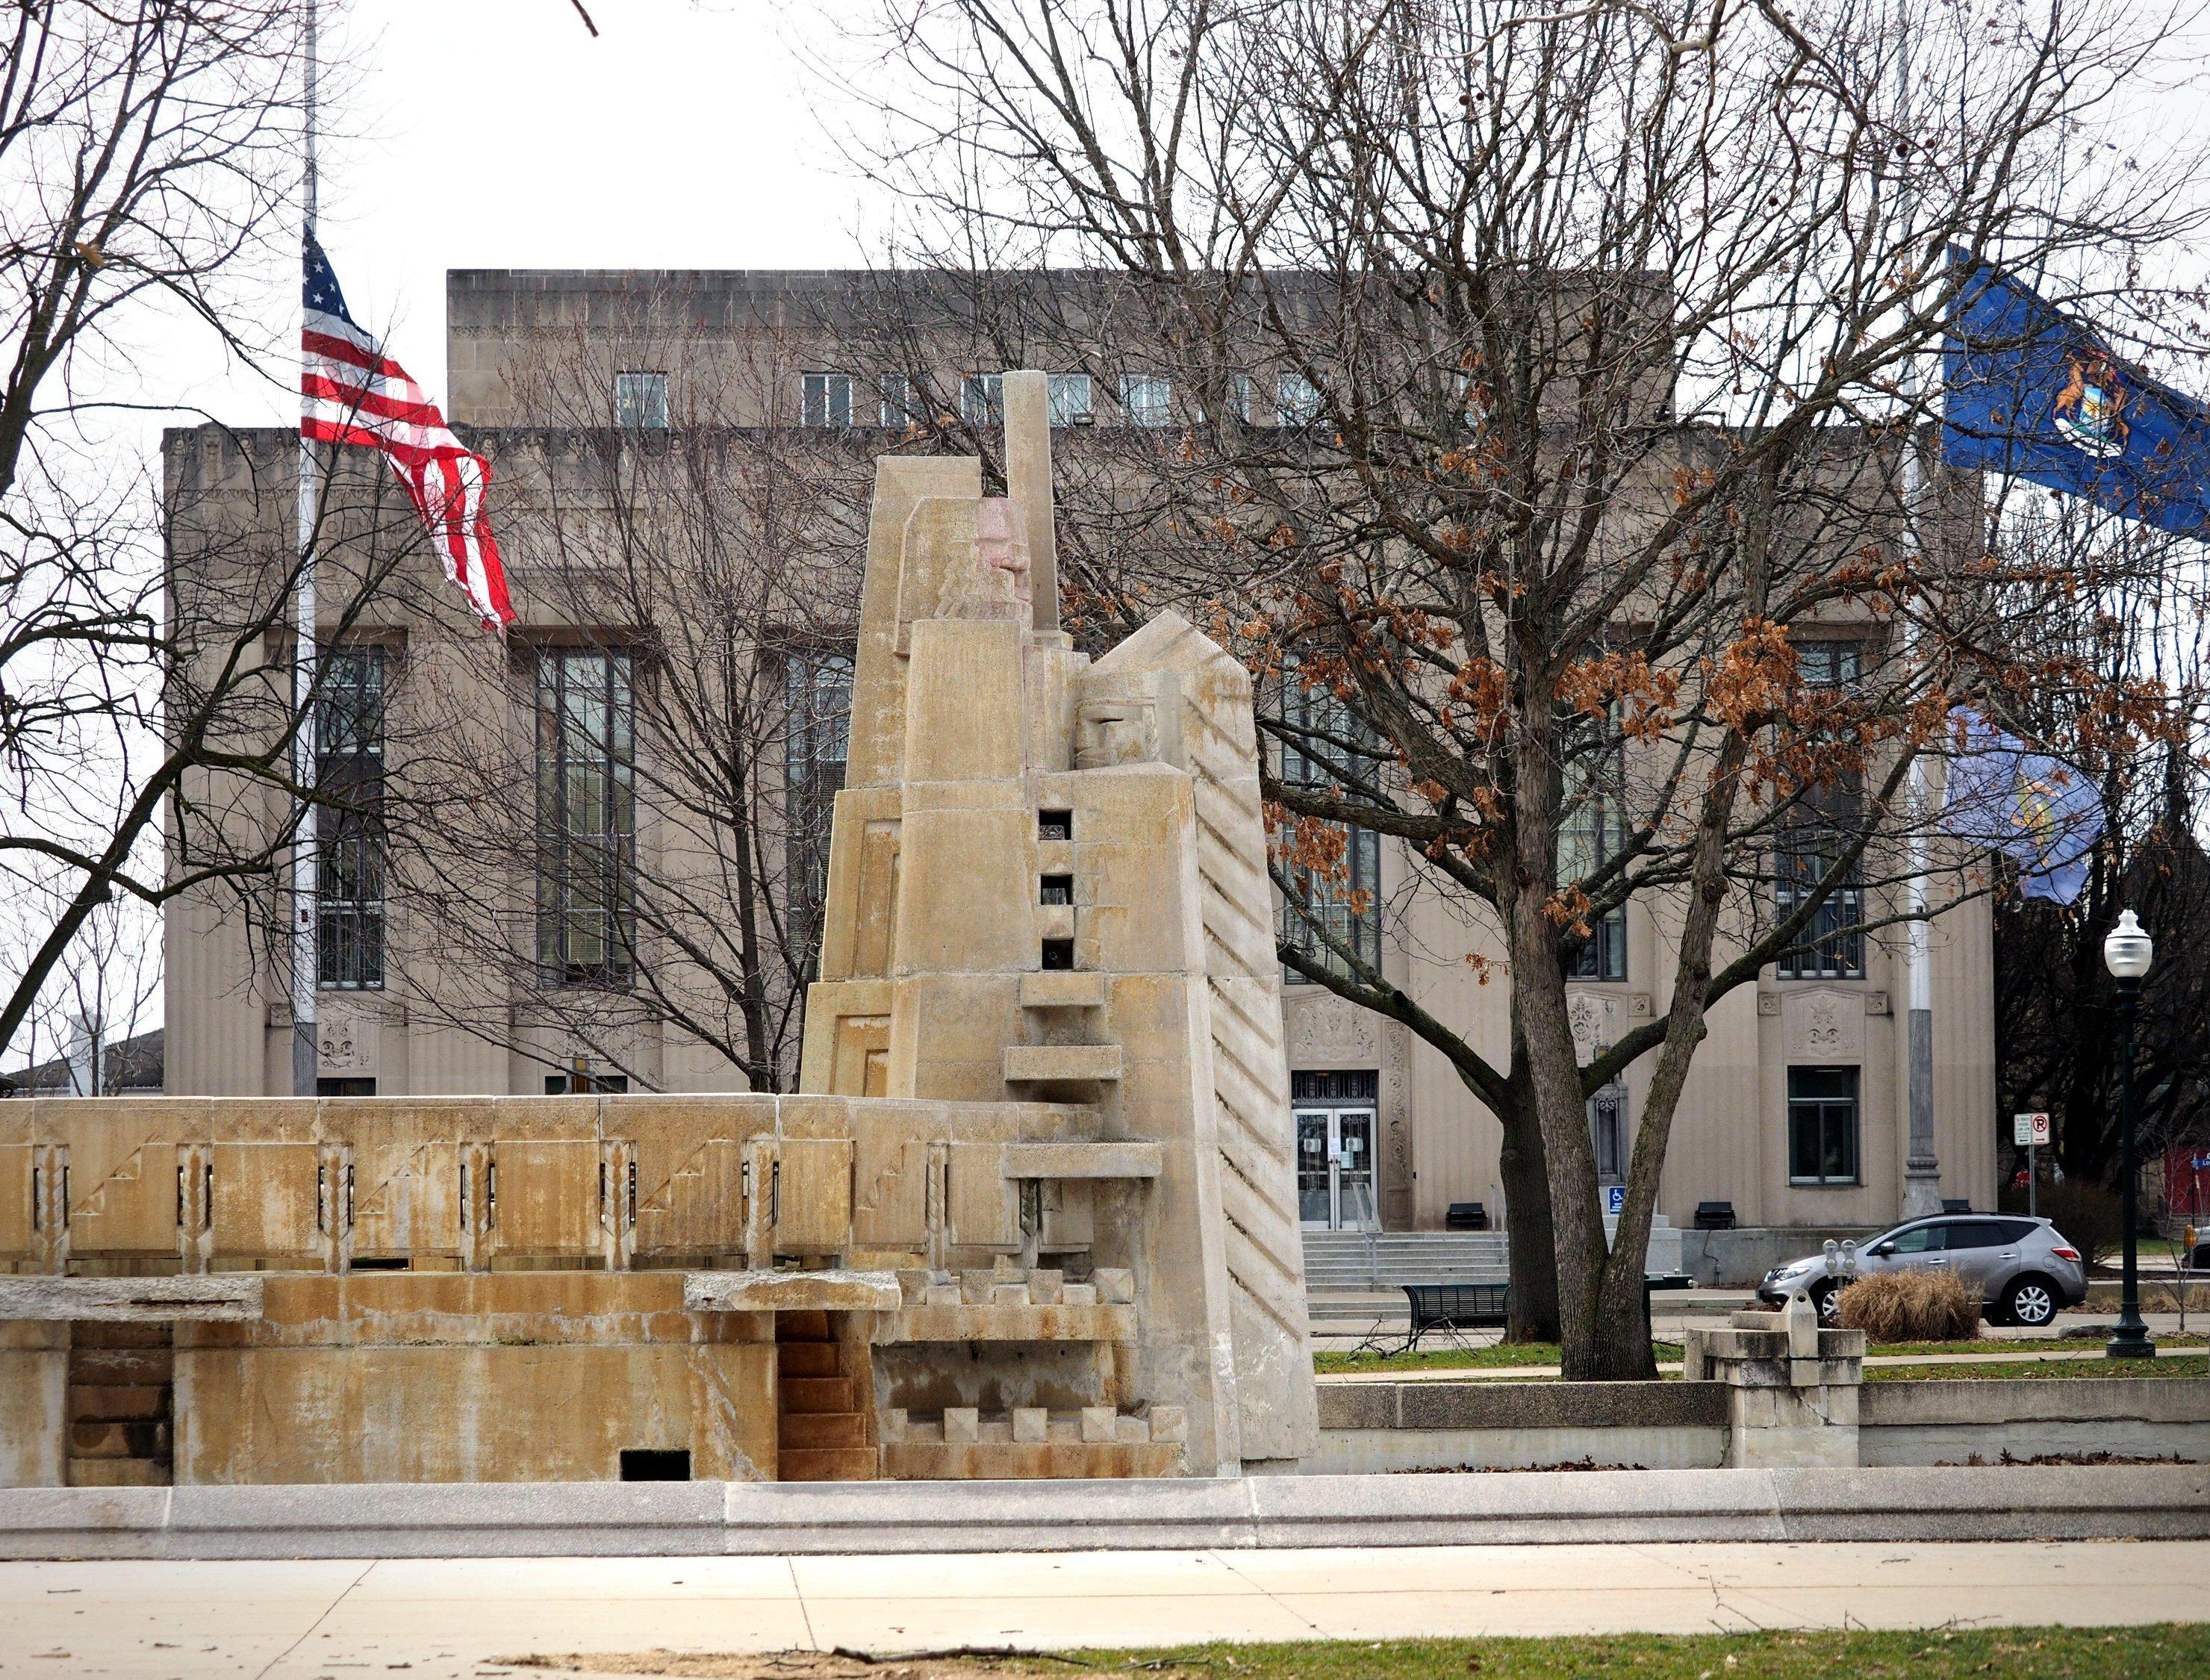 This May 5, 2018 photo shows the Fountain of the Pioneers in Bronson Park in Kalamazoo, Mich. (Mark Bugnaski/Kalamazoo Gazette-MLive Media Group via AP)